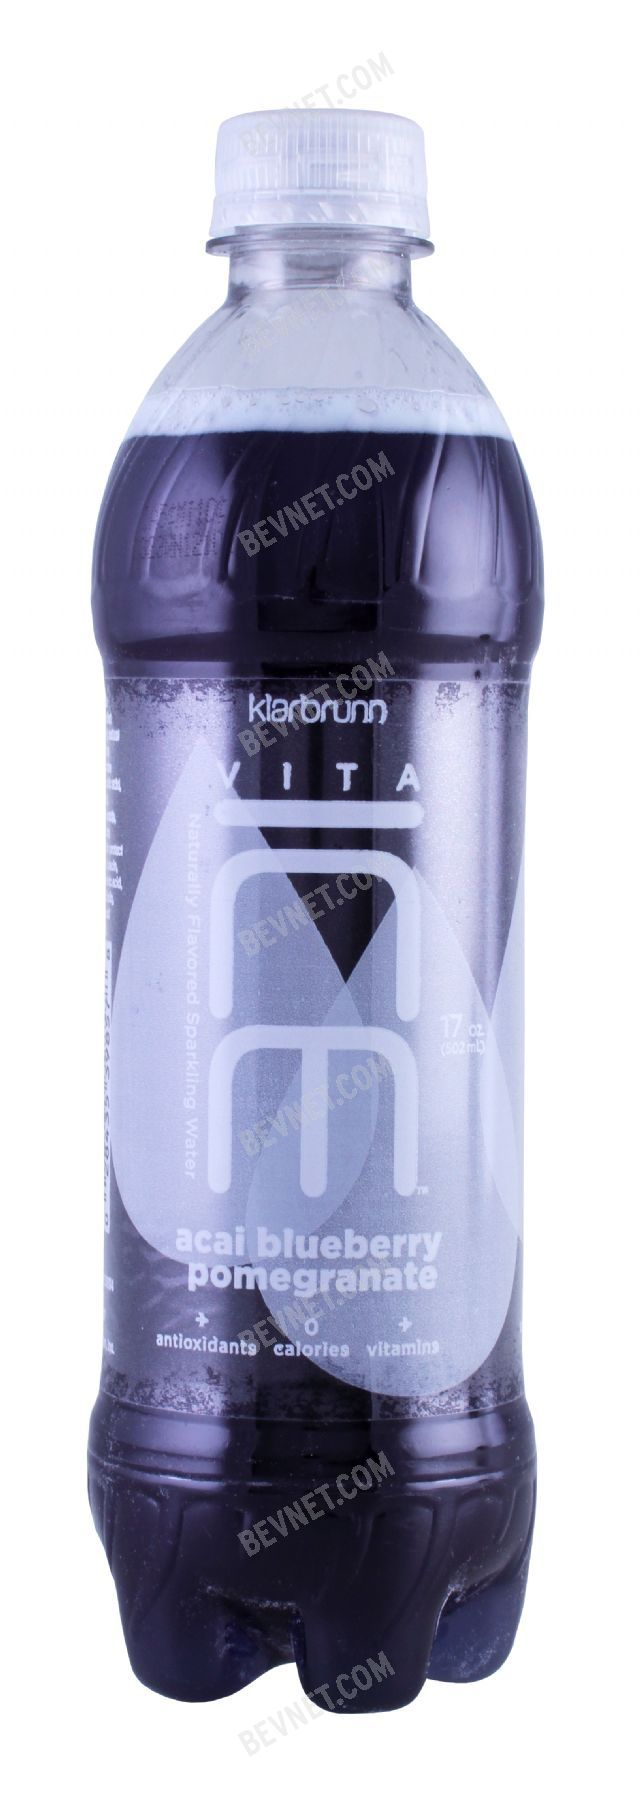 Klarbrunn Vita Ice: